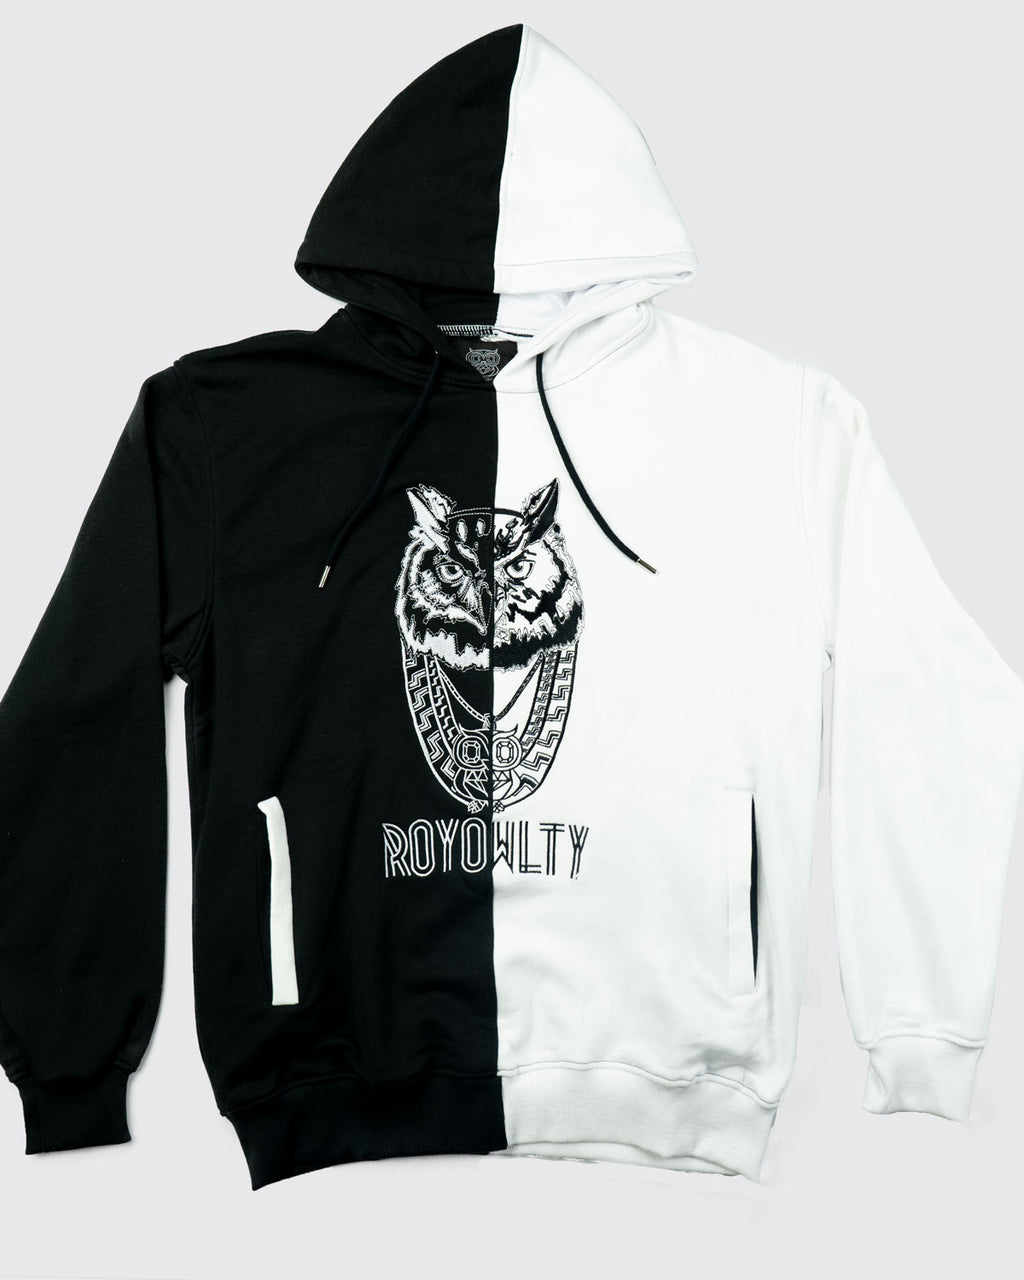 OWL PENDANT sweater(black/white)